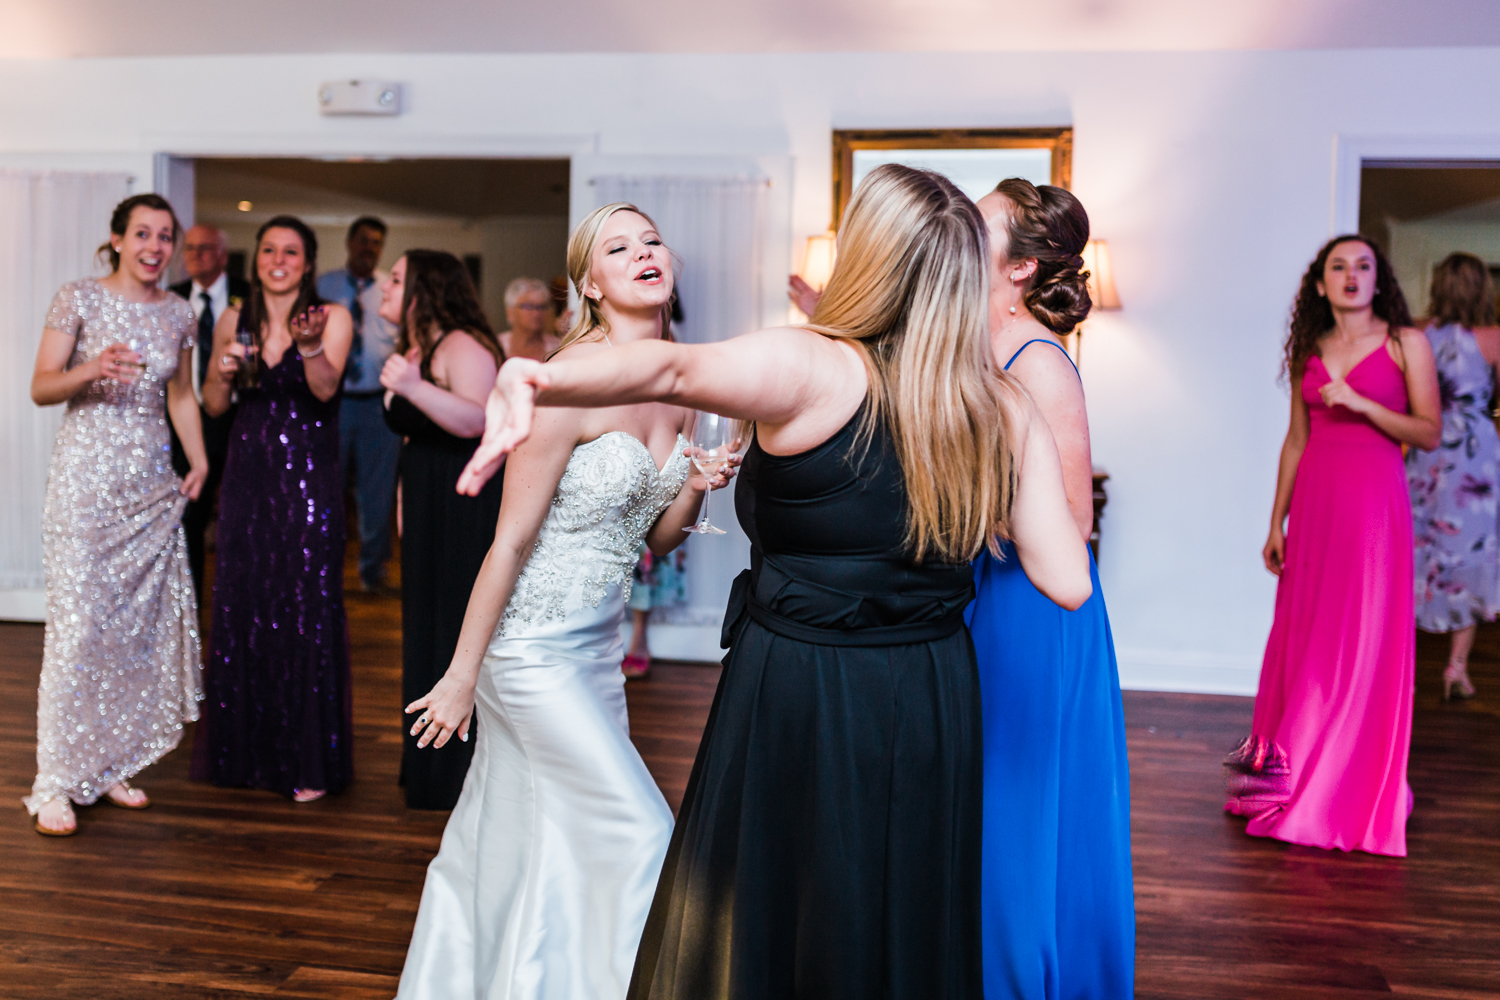 bride dancing and singing with her friends at her wedding reception at Antrim 1844 in Taneytown